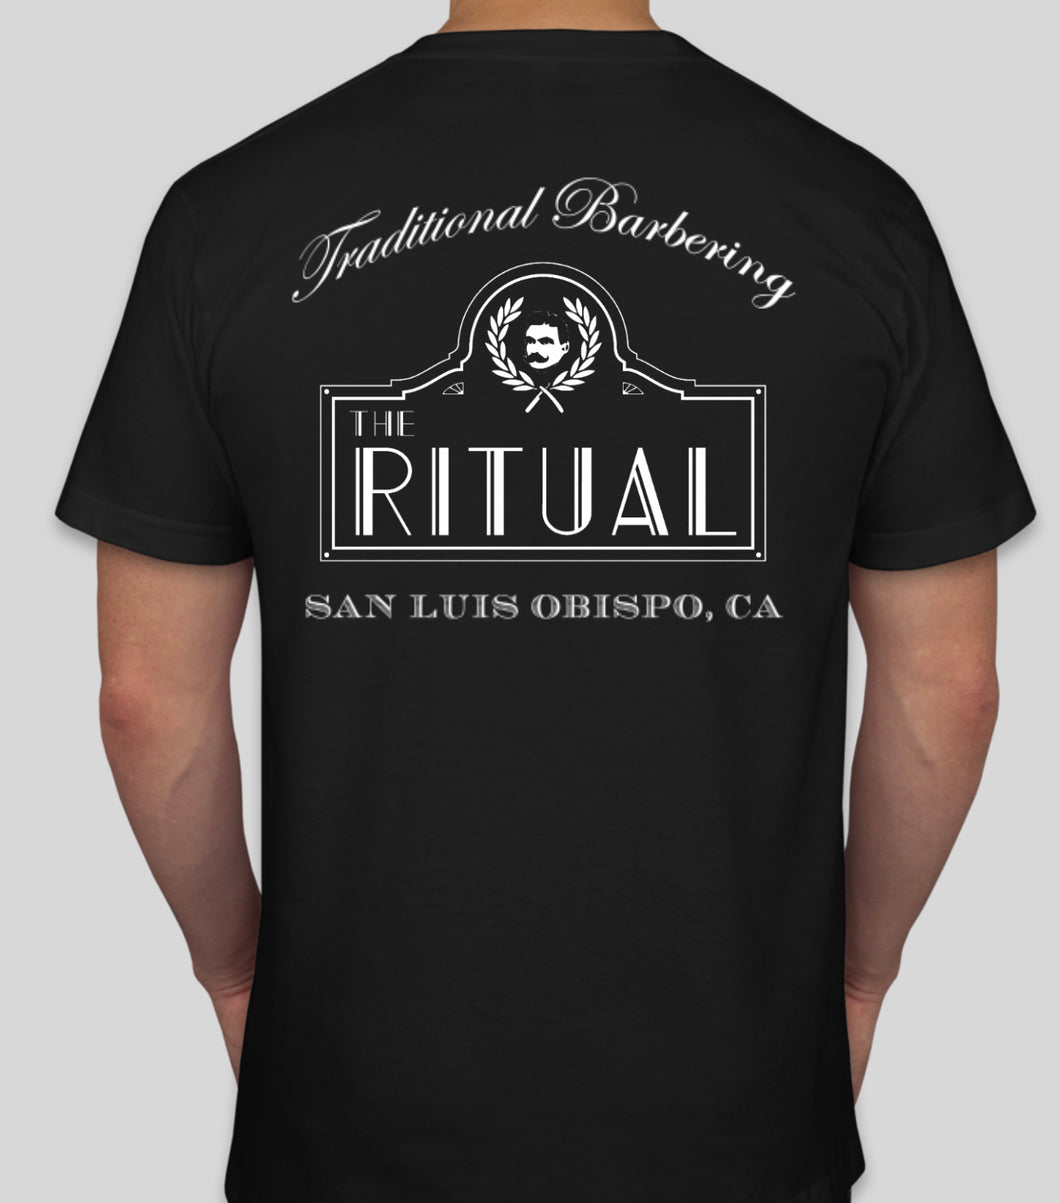 RITUAL MERCH- BLACK TRADITIONAL BARBERING SHIRT